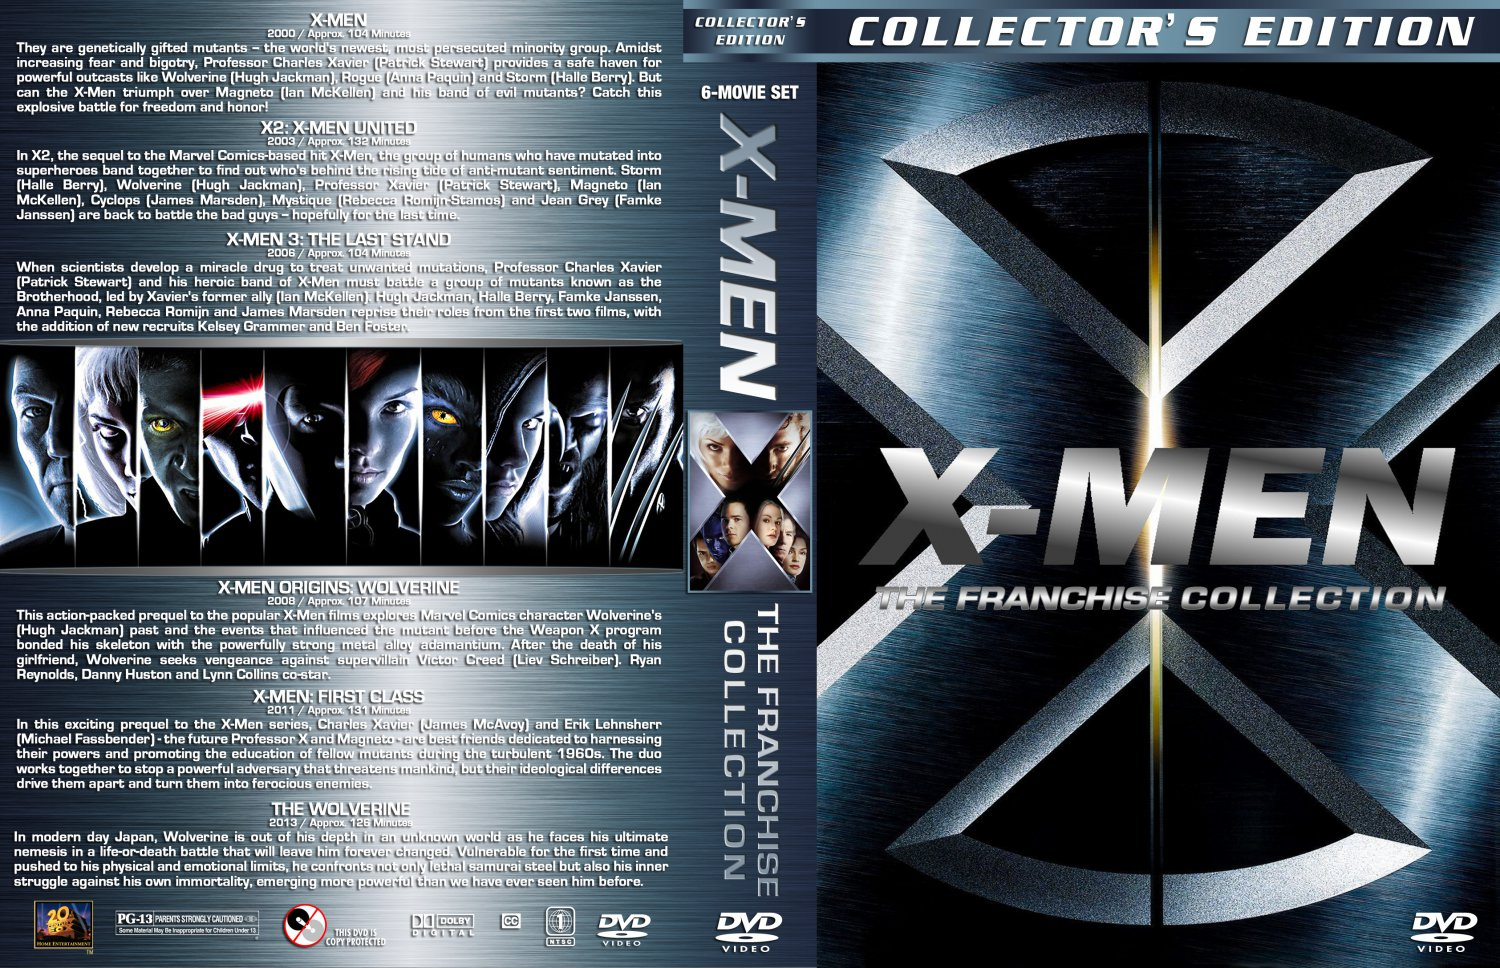 X Men Dvd Cover: The Franchise Collection